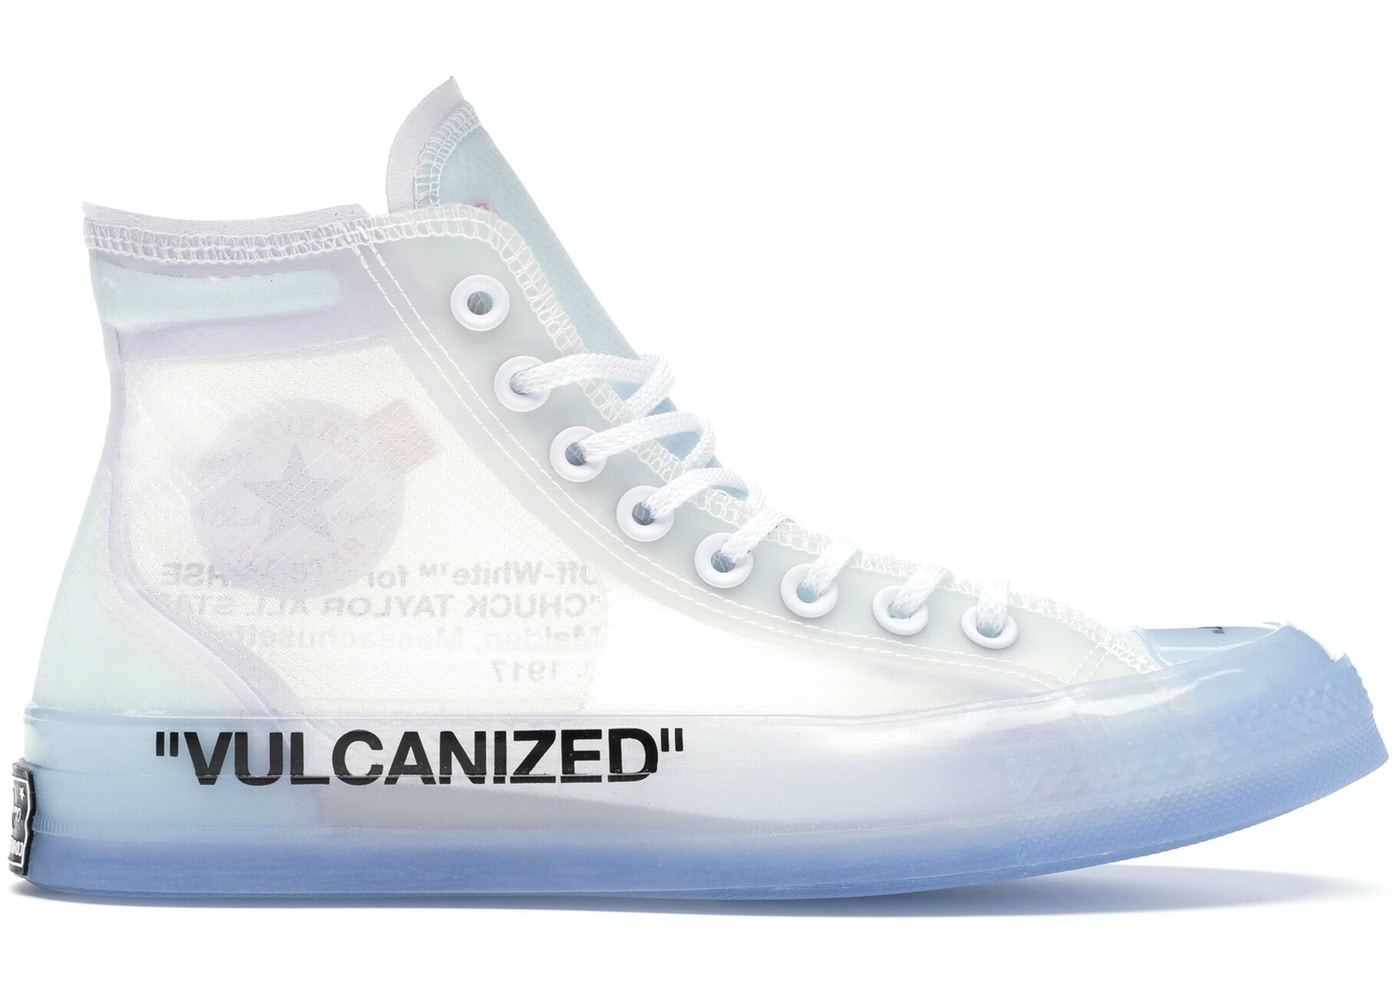 classic hot-seeling original reputation first Converse Chuck Taylor All-Star Vulcanized Hi Off-White